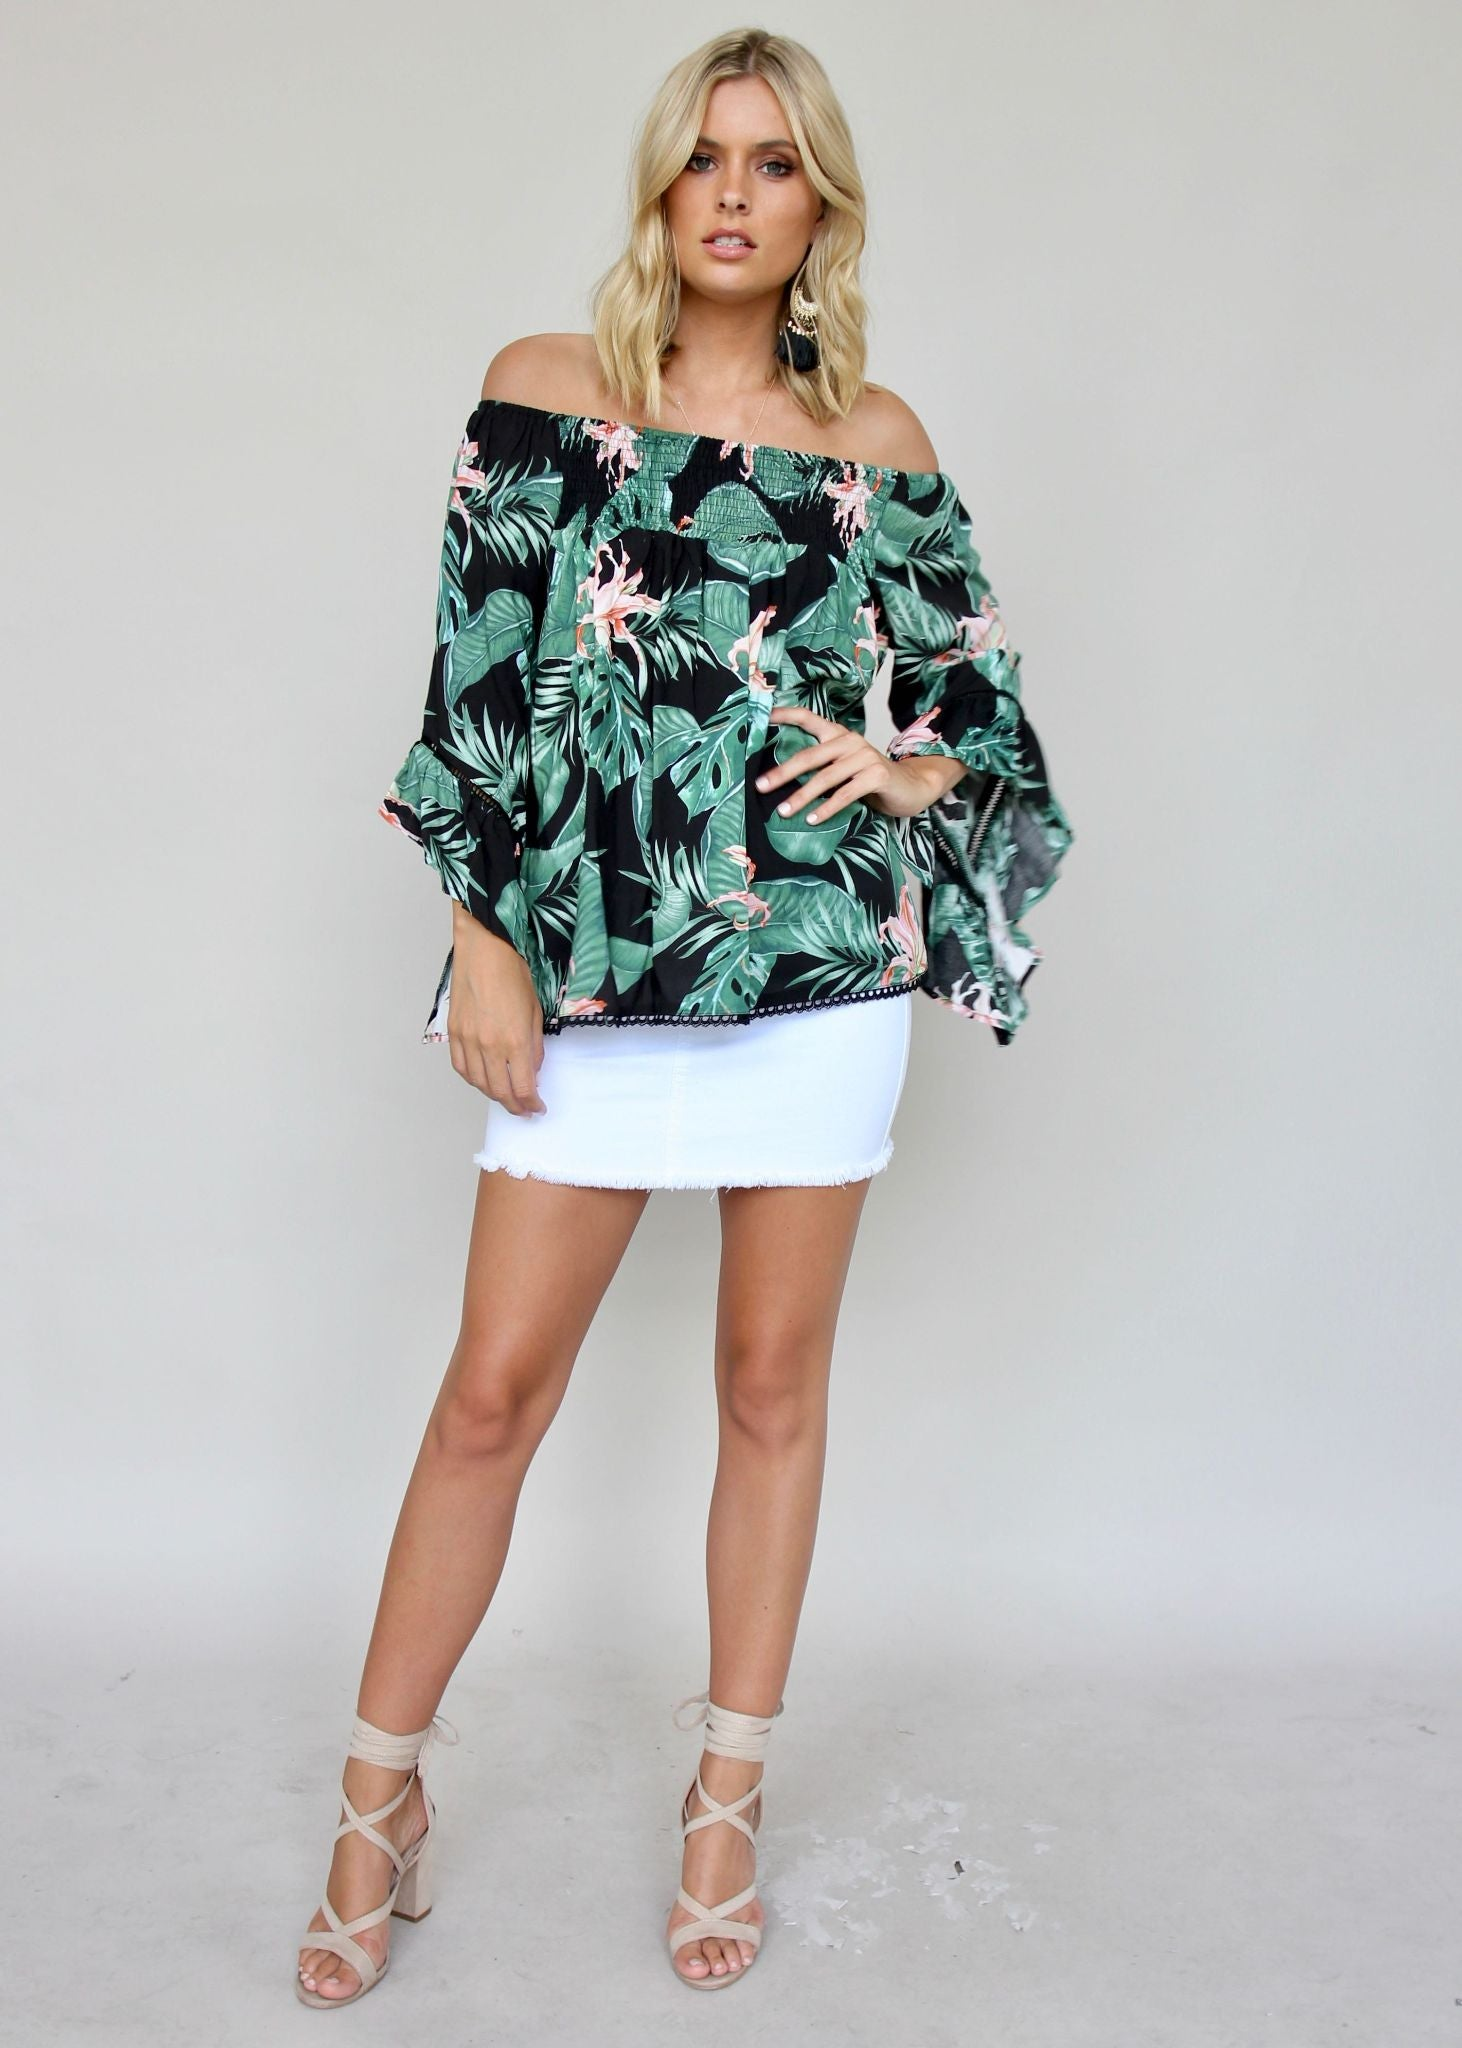 Sugar Night Off Shoulder Top - Black Florida